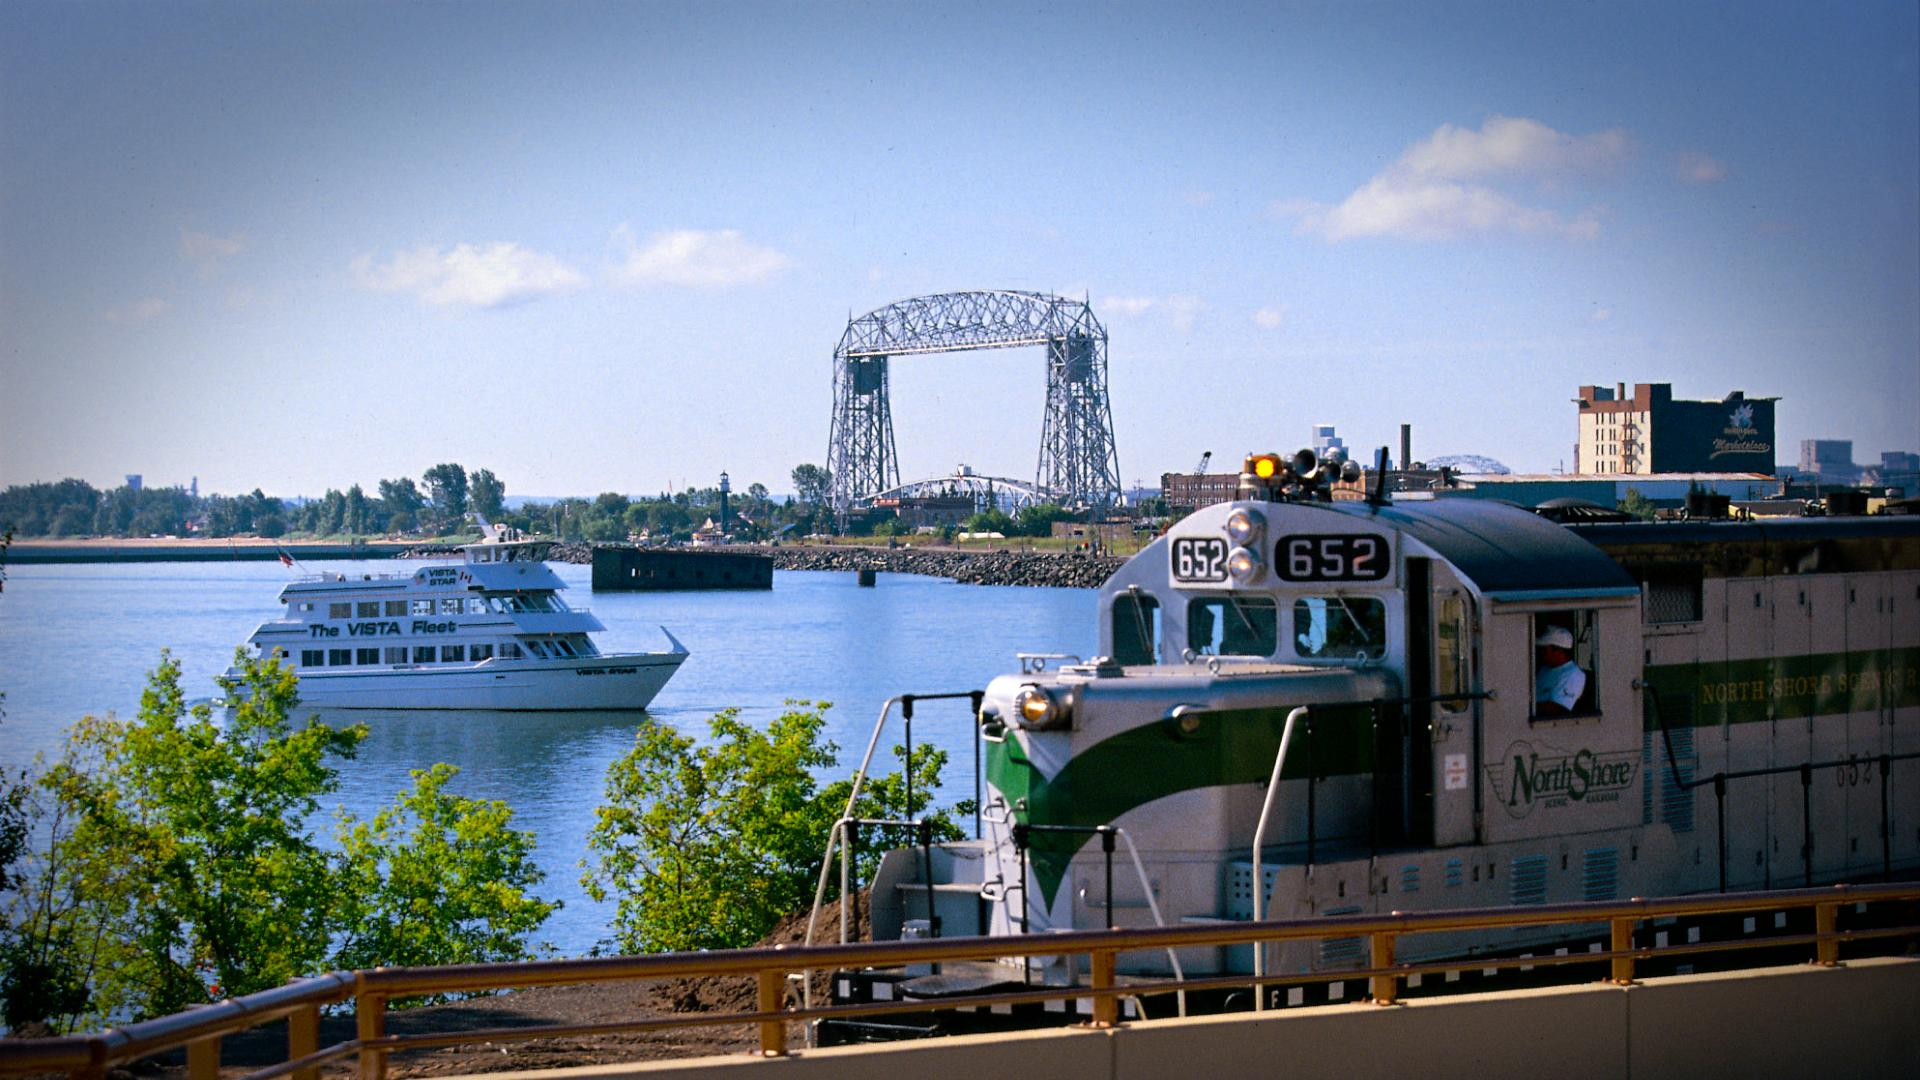 Duluth waterfront with train, boat and lift bridge